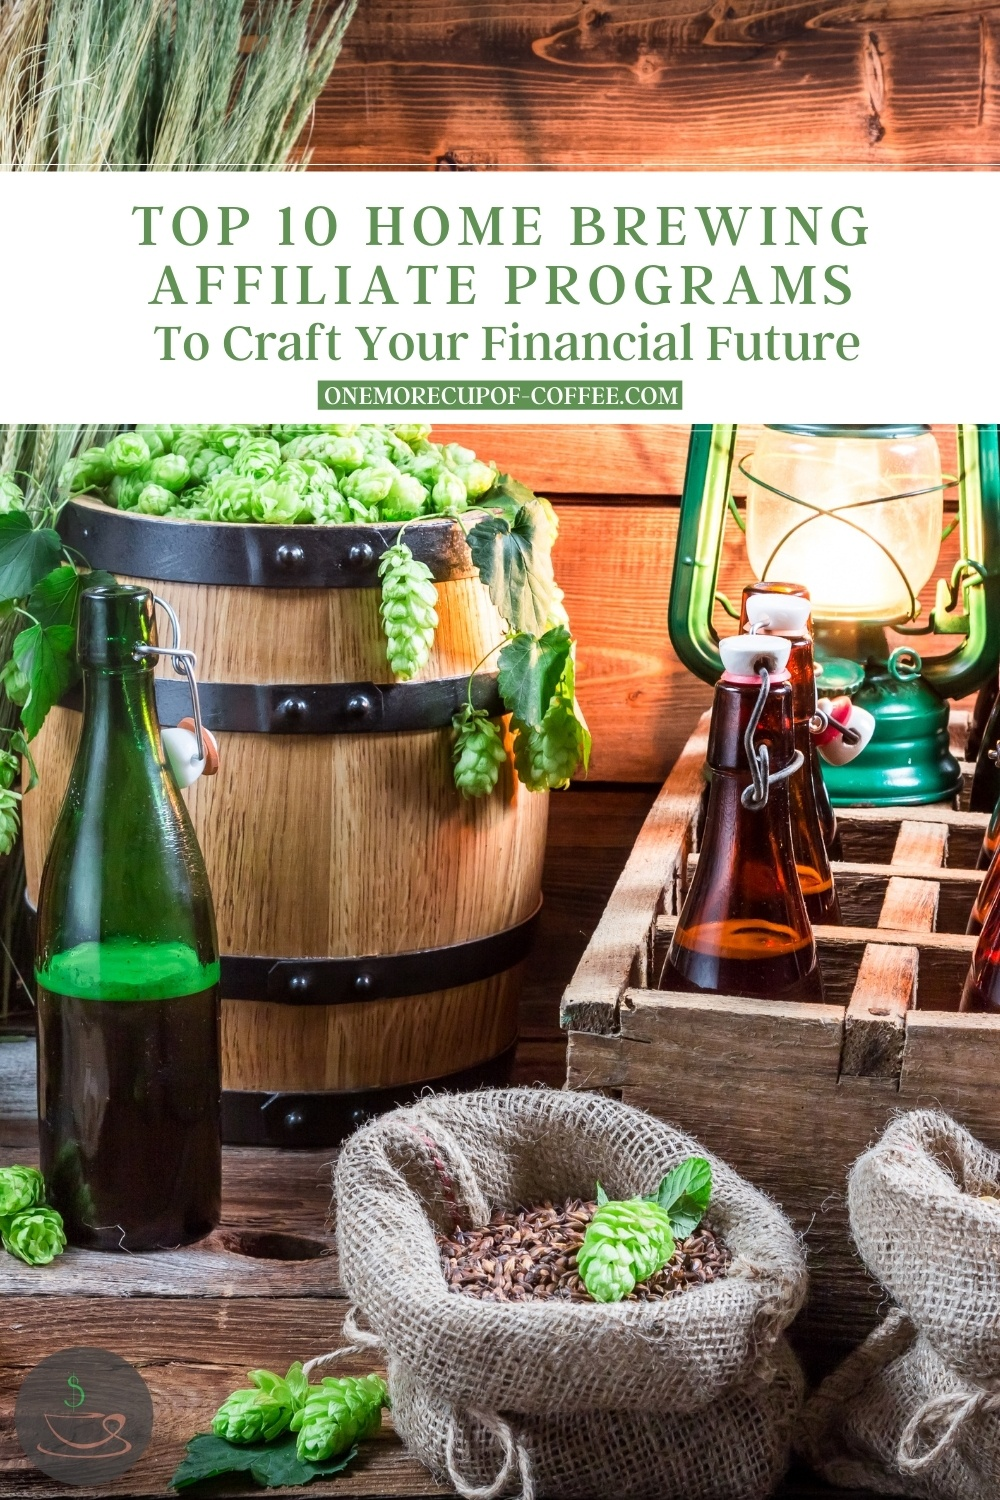 on a wooden surface and wall is a wooden keg with fresh ingredients, wooden crates with wine bottles and green lamp, burlap sack with grains; with text overlay